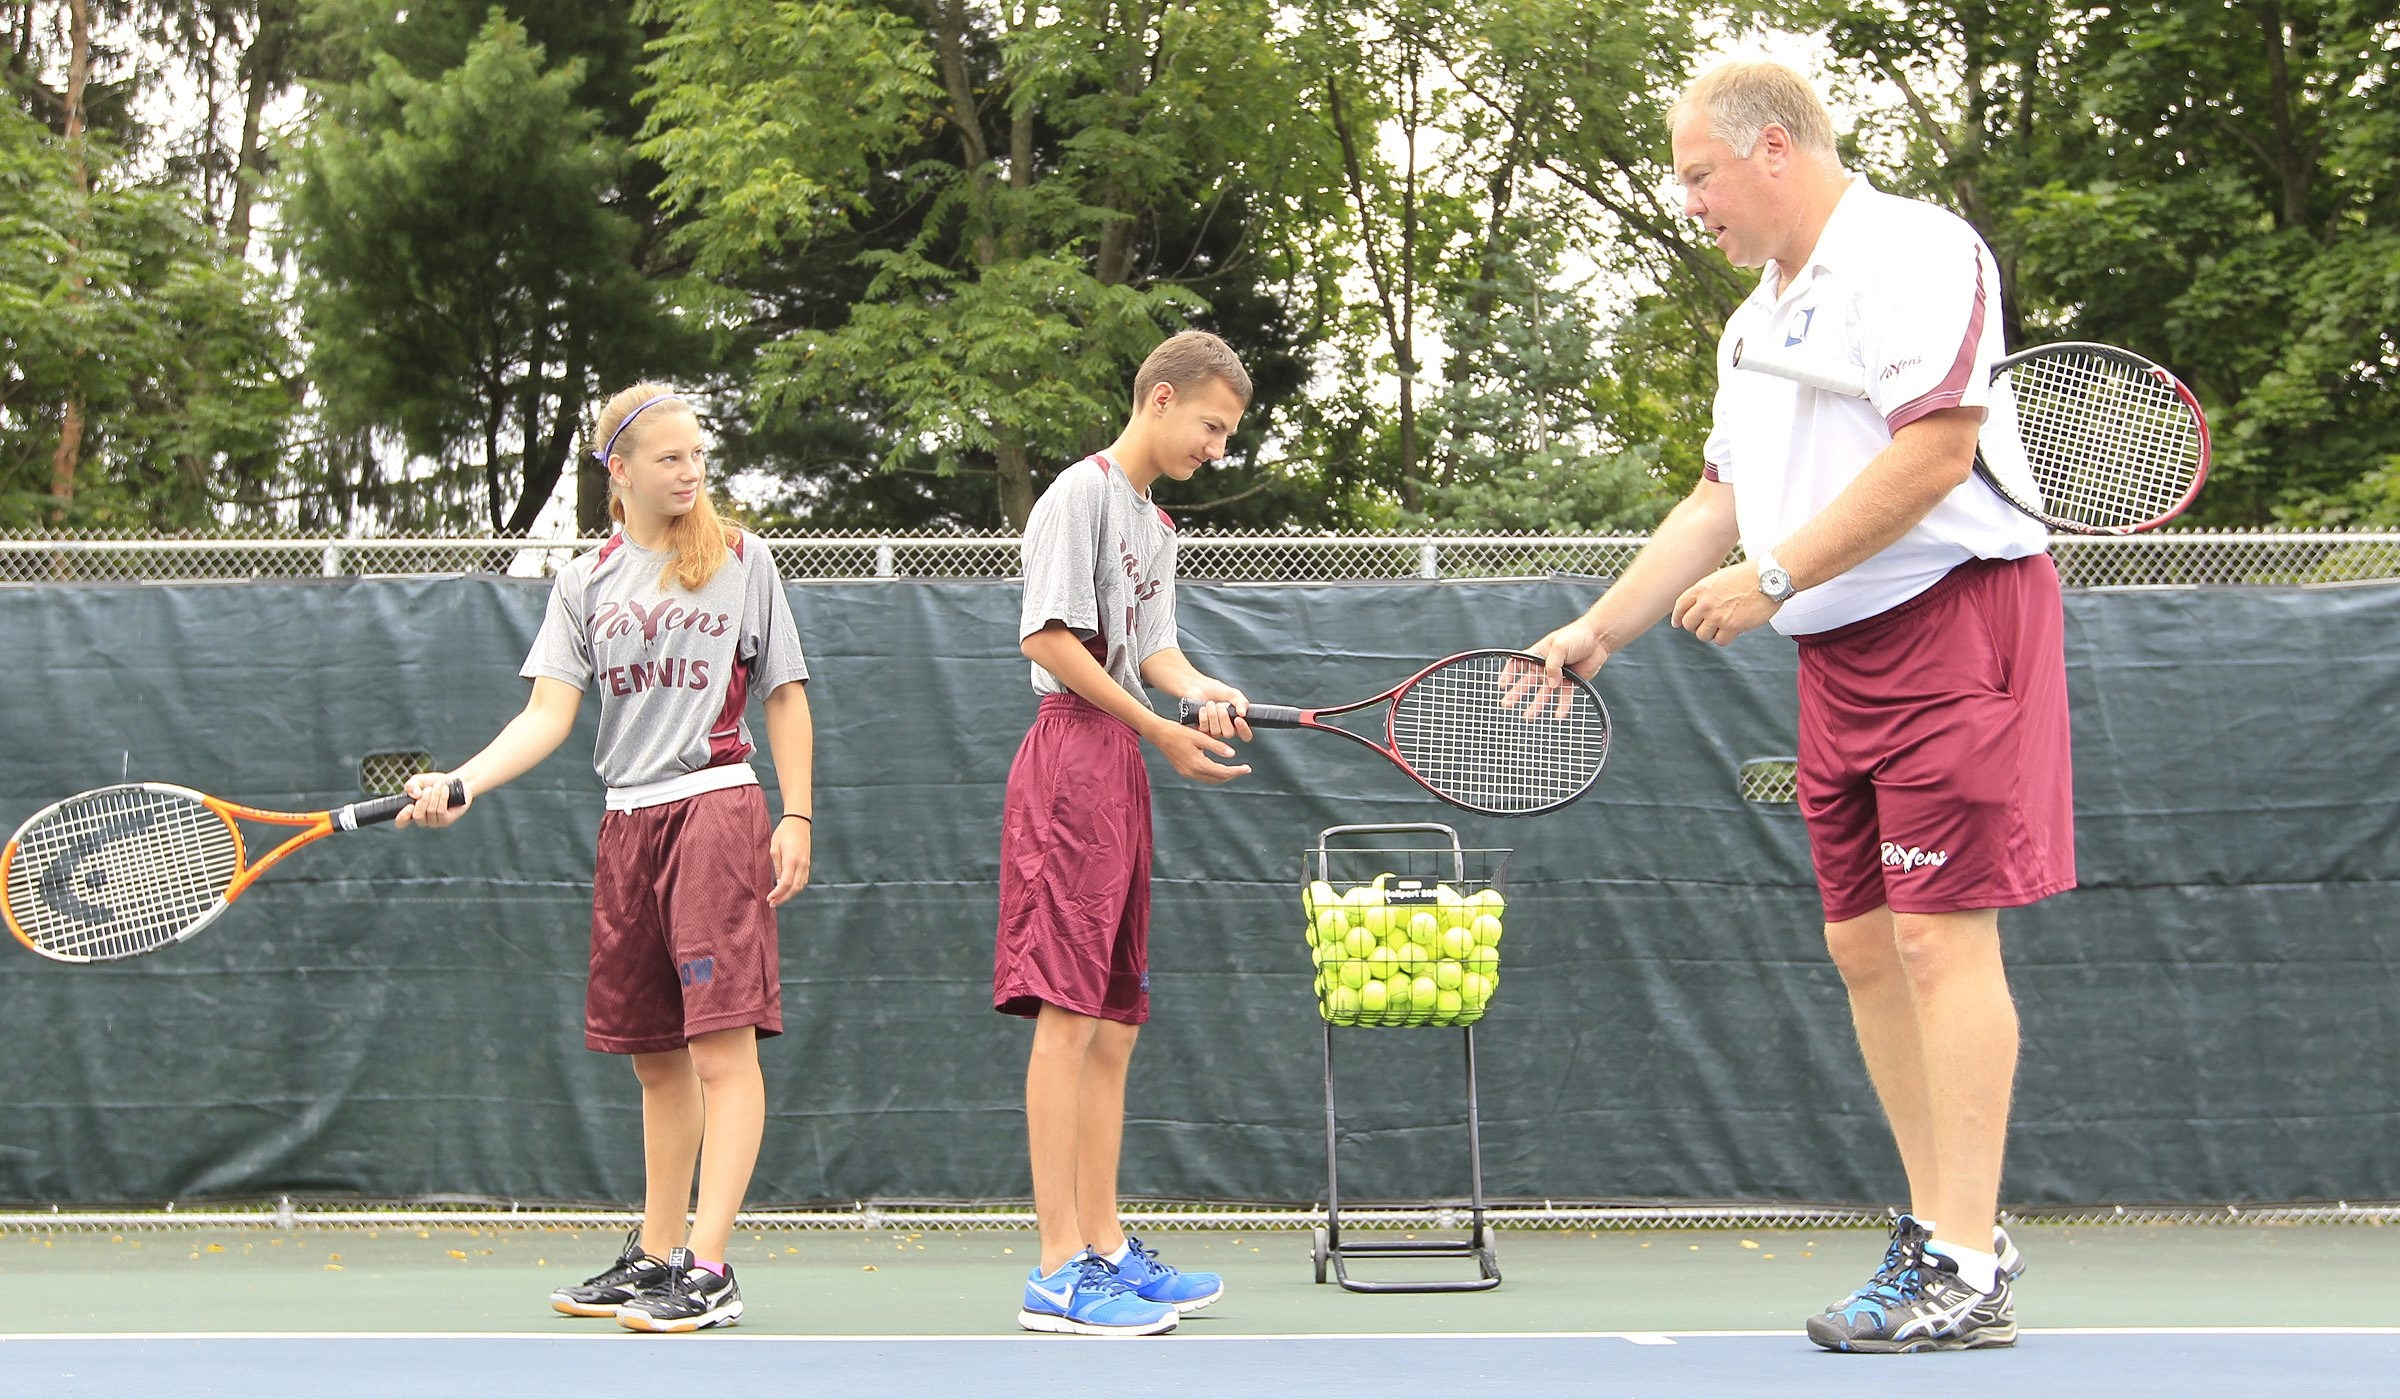 Gow school athletics director and tennis coach Mark Szafnicki instructs  Emily Todoro, 17, and Cole Wahler, 16.